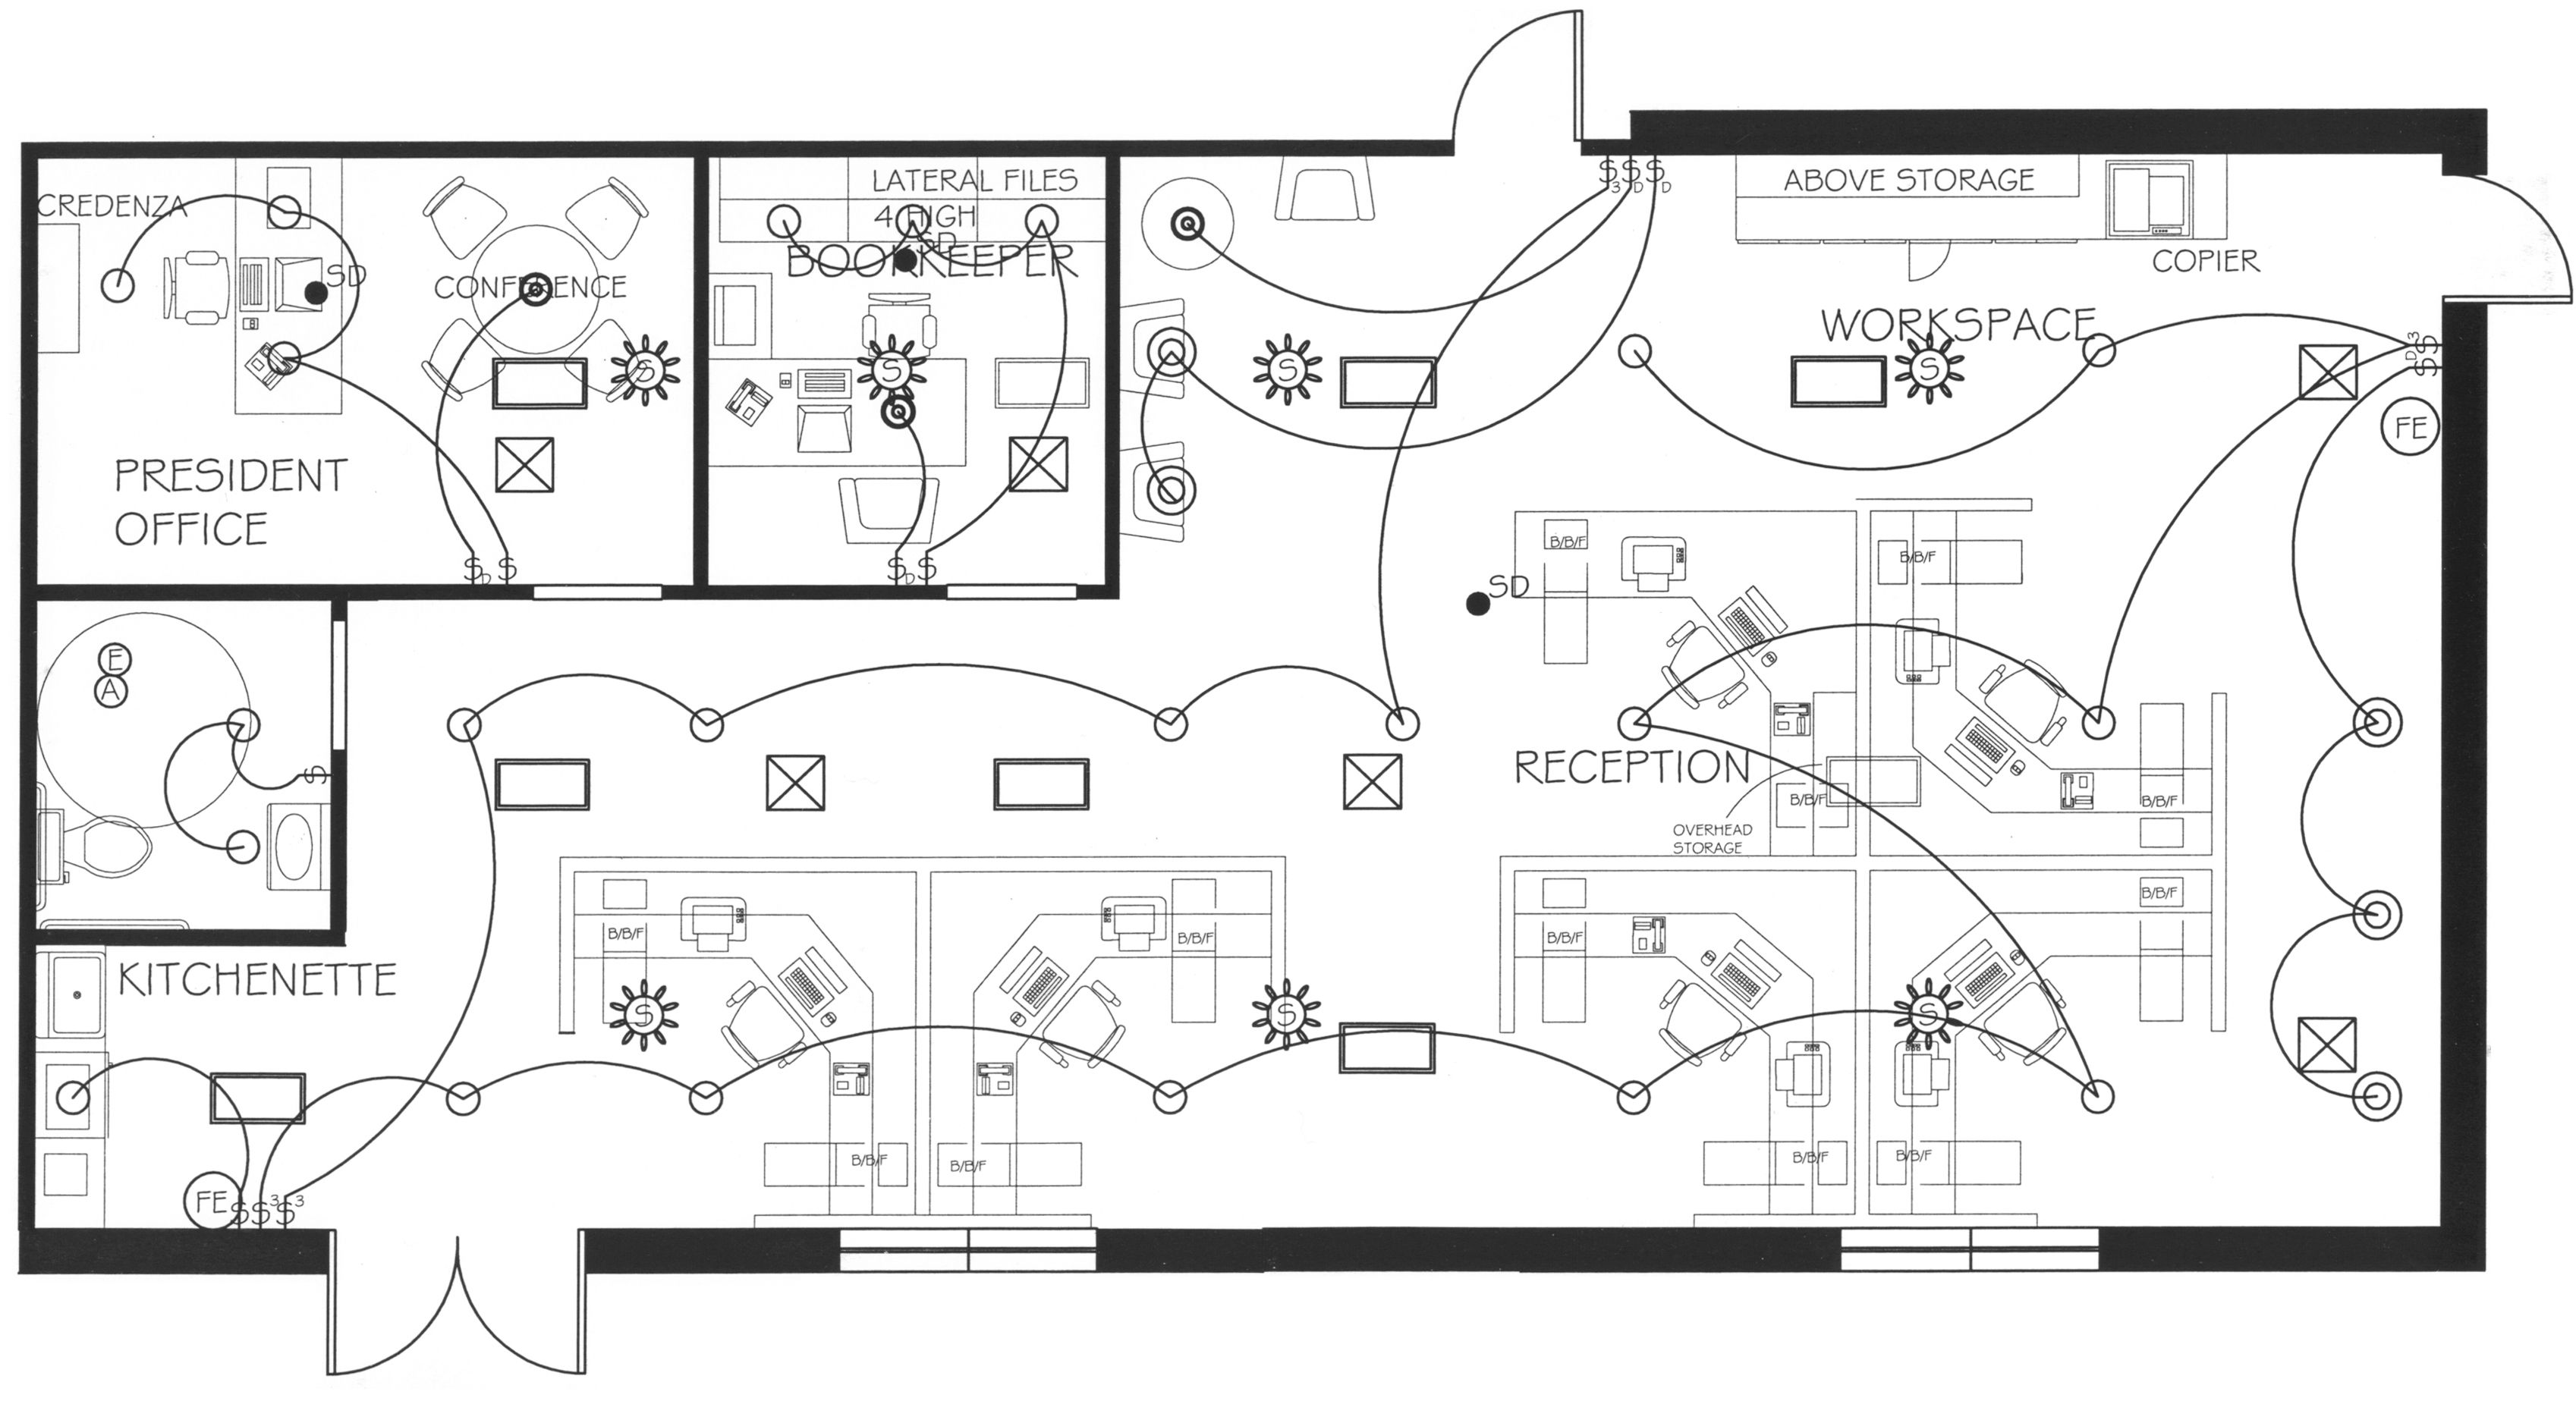 office layout floor plan lauren dugger\u0027s portfolio lighting Architectural Floor Plans office layout floor plan lauren dugger\u0027s portfolio